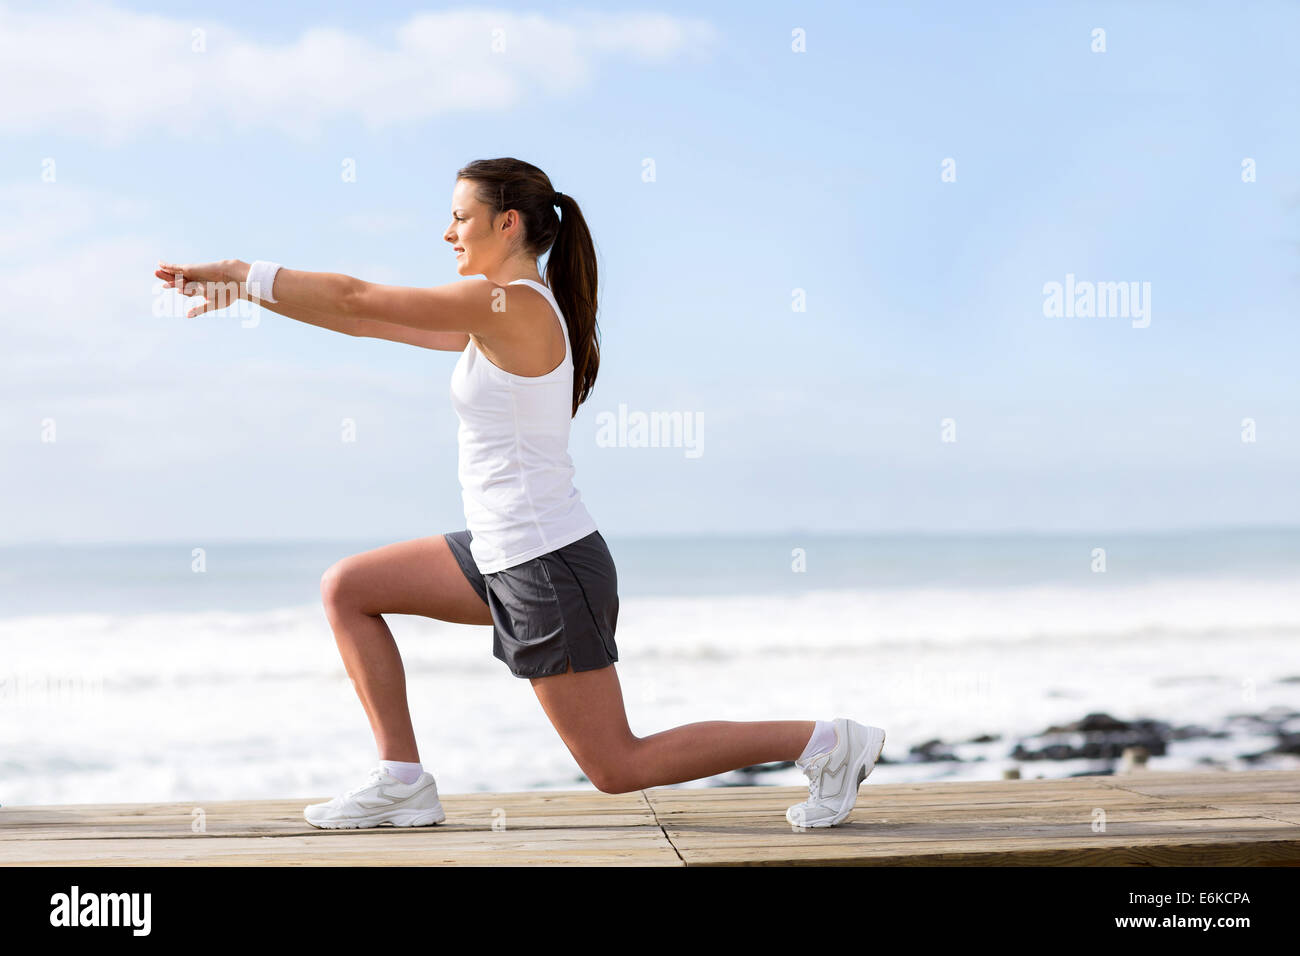 healthy woman working out outdoors at beach - Stock Image